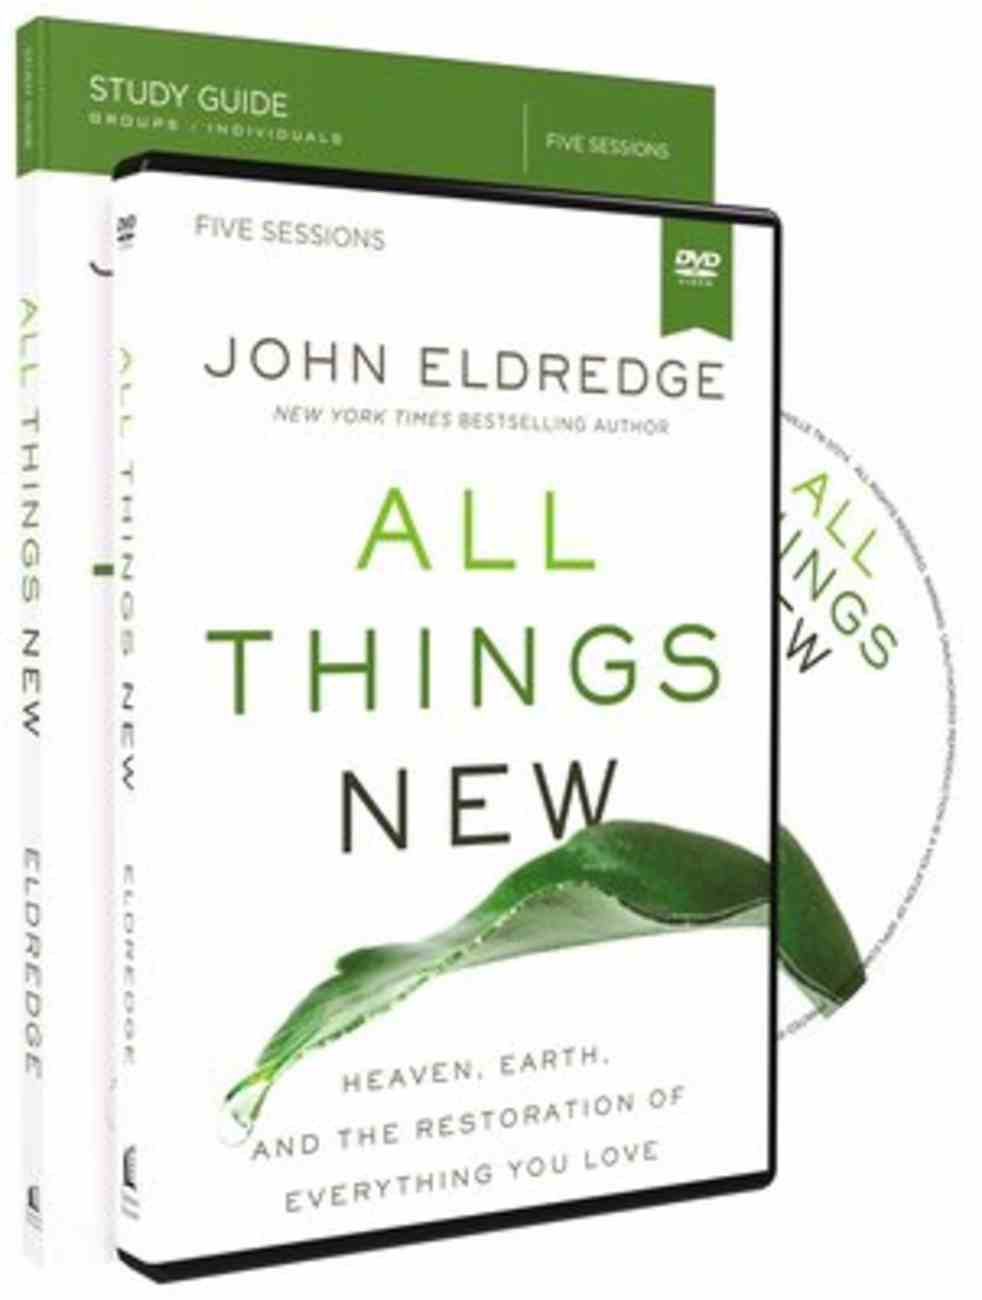 All Things New: A Revolutionary Look At Heaven and the Coming Kingdom (Study Guide With Dvd) Pack